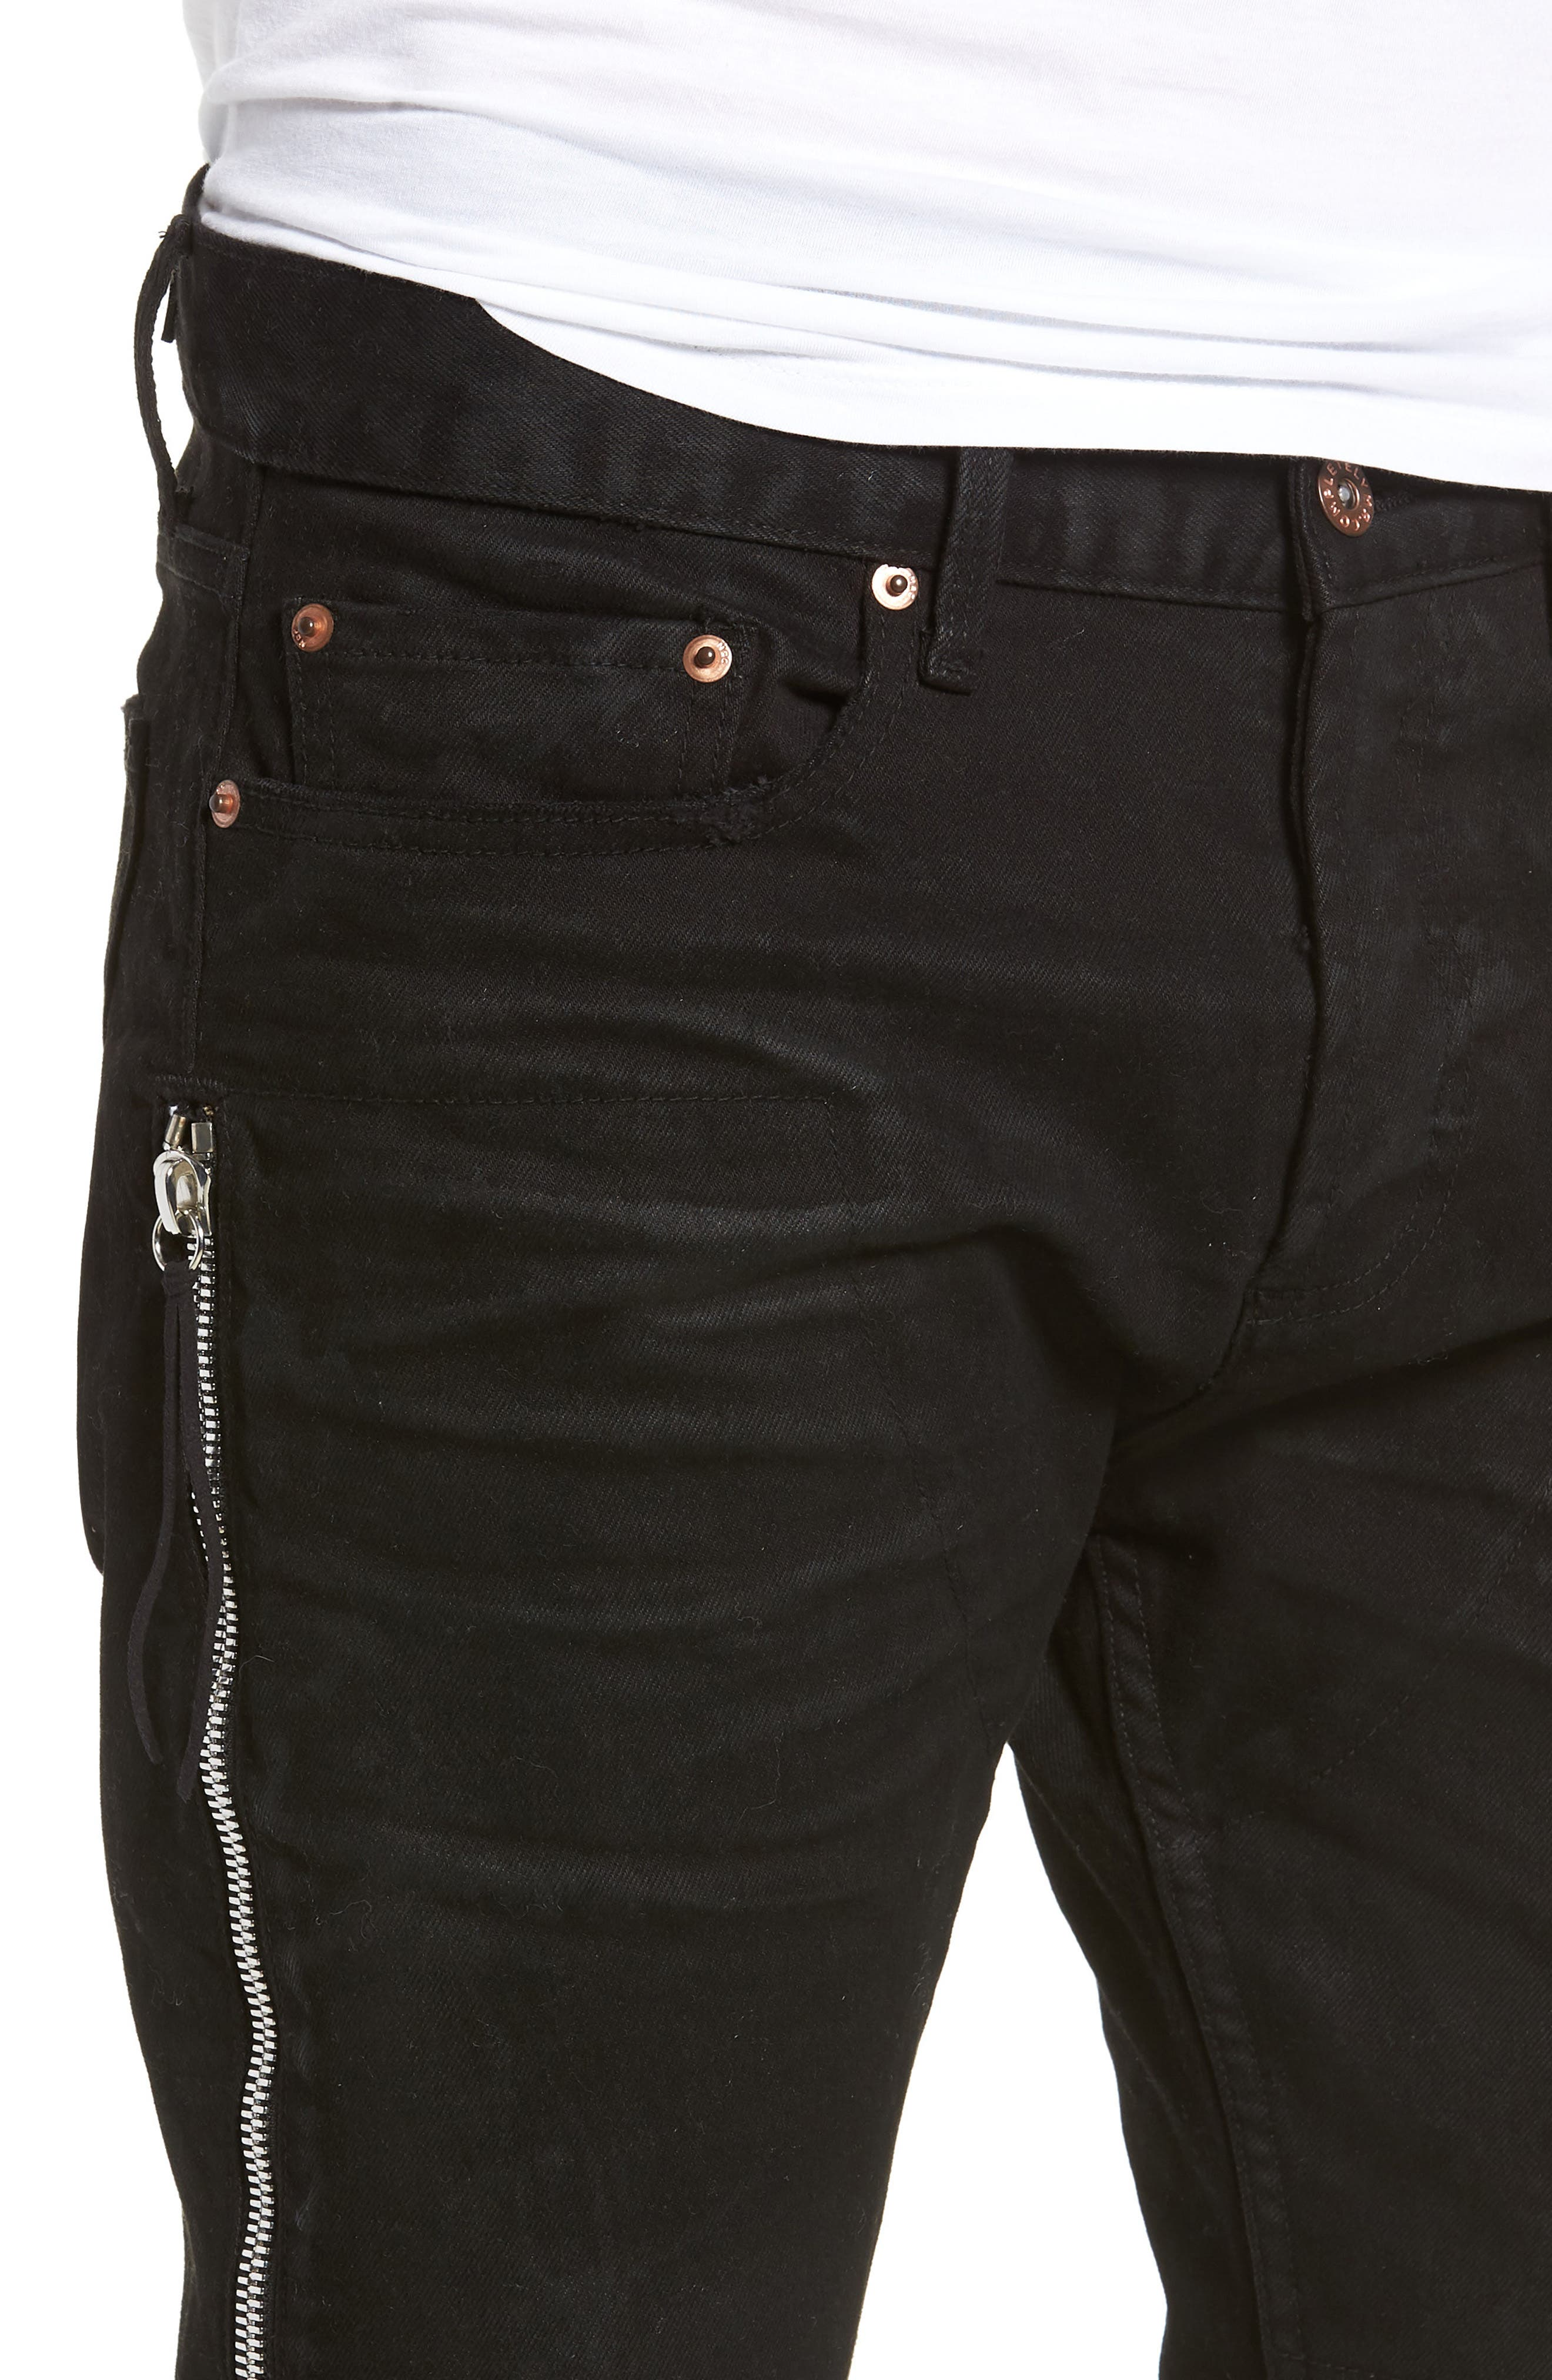 Trafford Skinny Fit Jeans,                             Alternate thumbnail 4, color,                             HERITAGE WAX